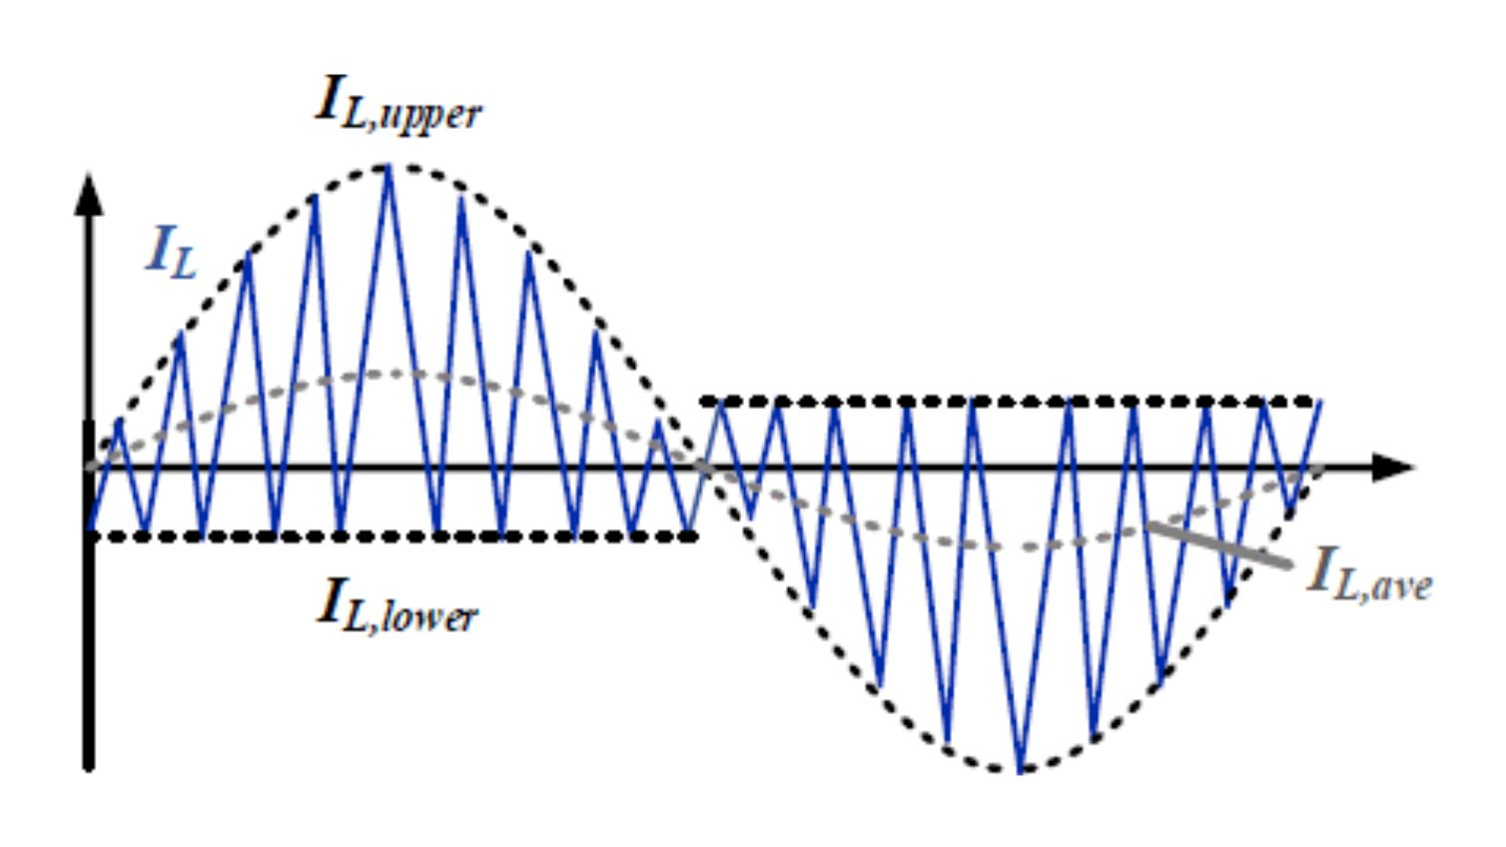 Inductor current waveform